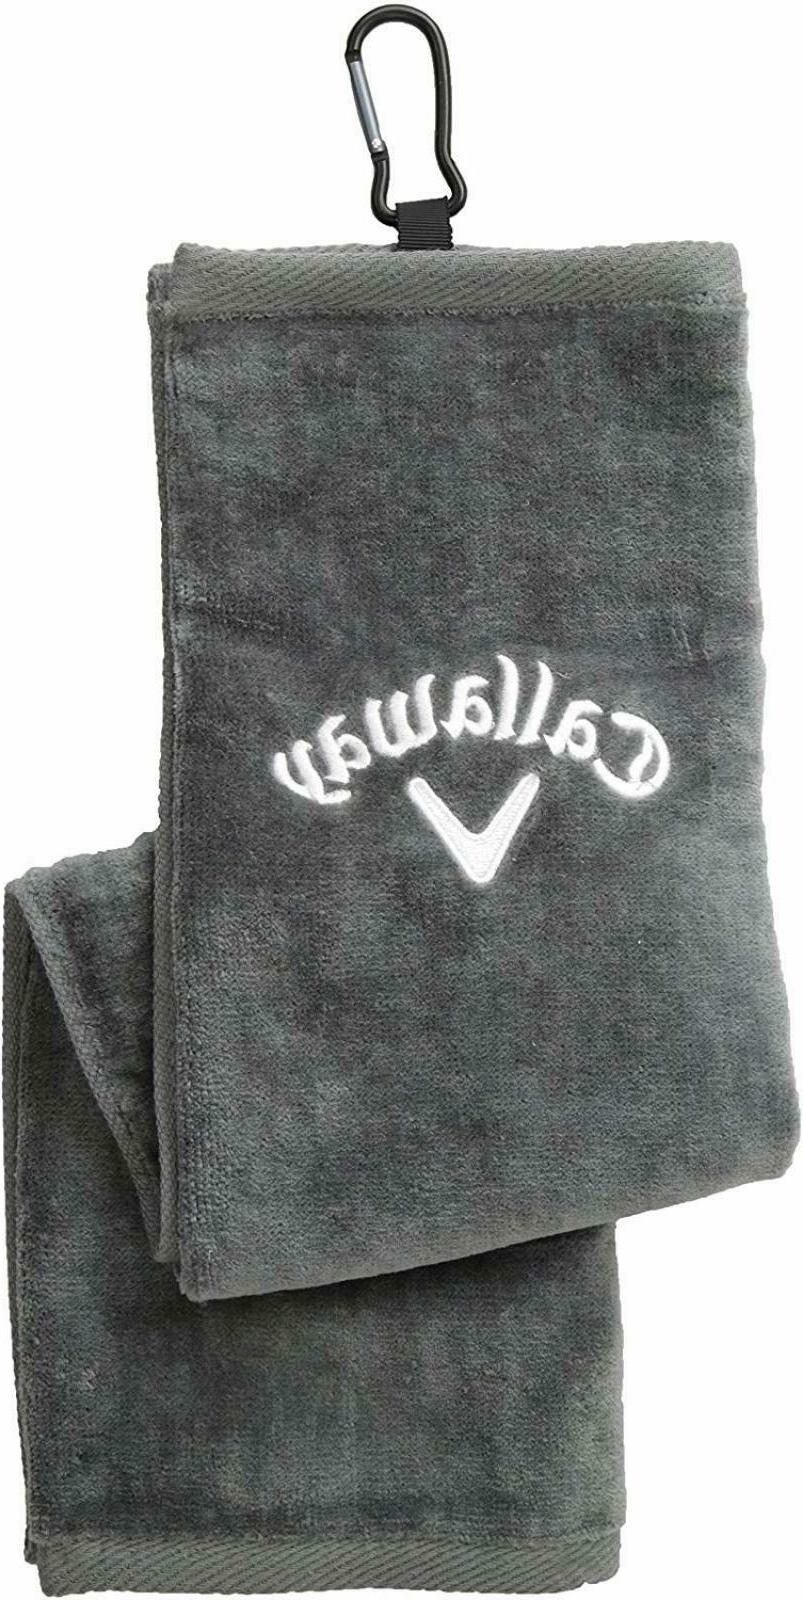 Callaway Golf 2018 Uptown Towel Grey Slim 21 Inch x 16 Inch